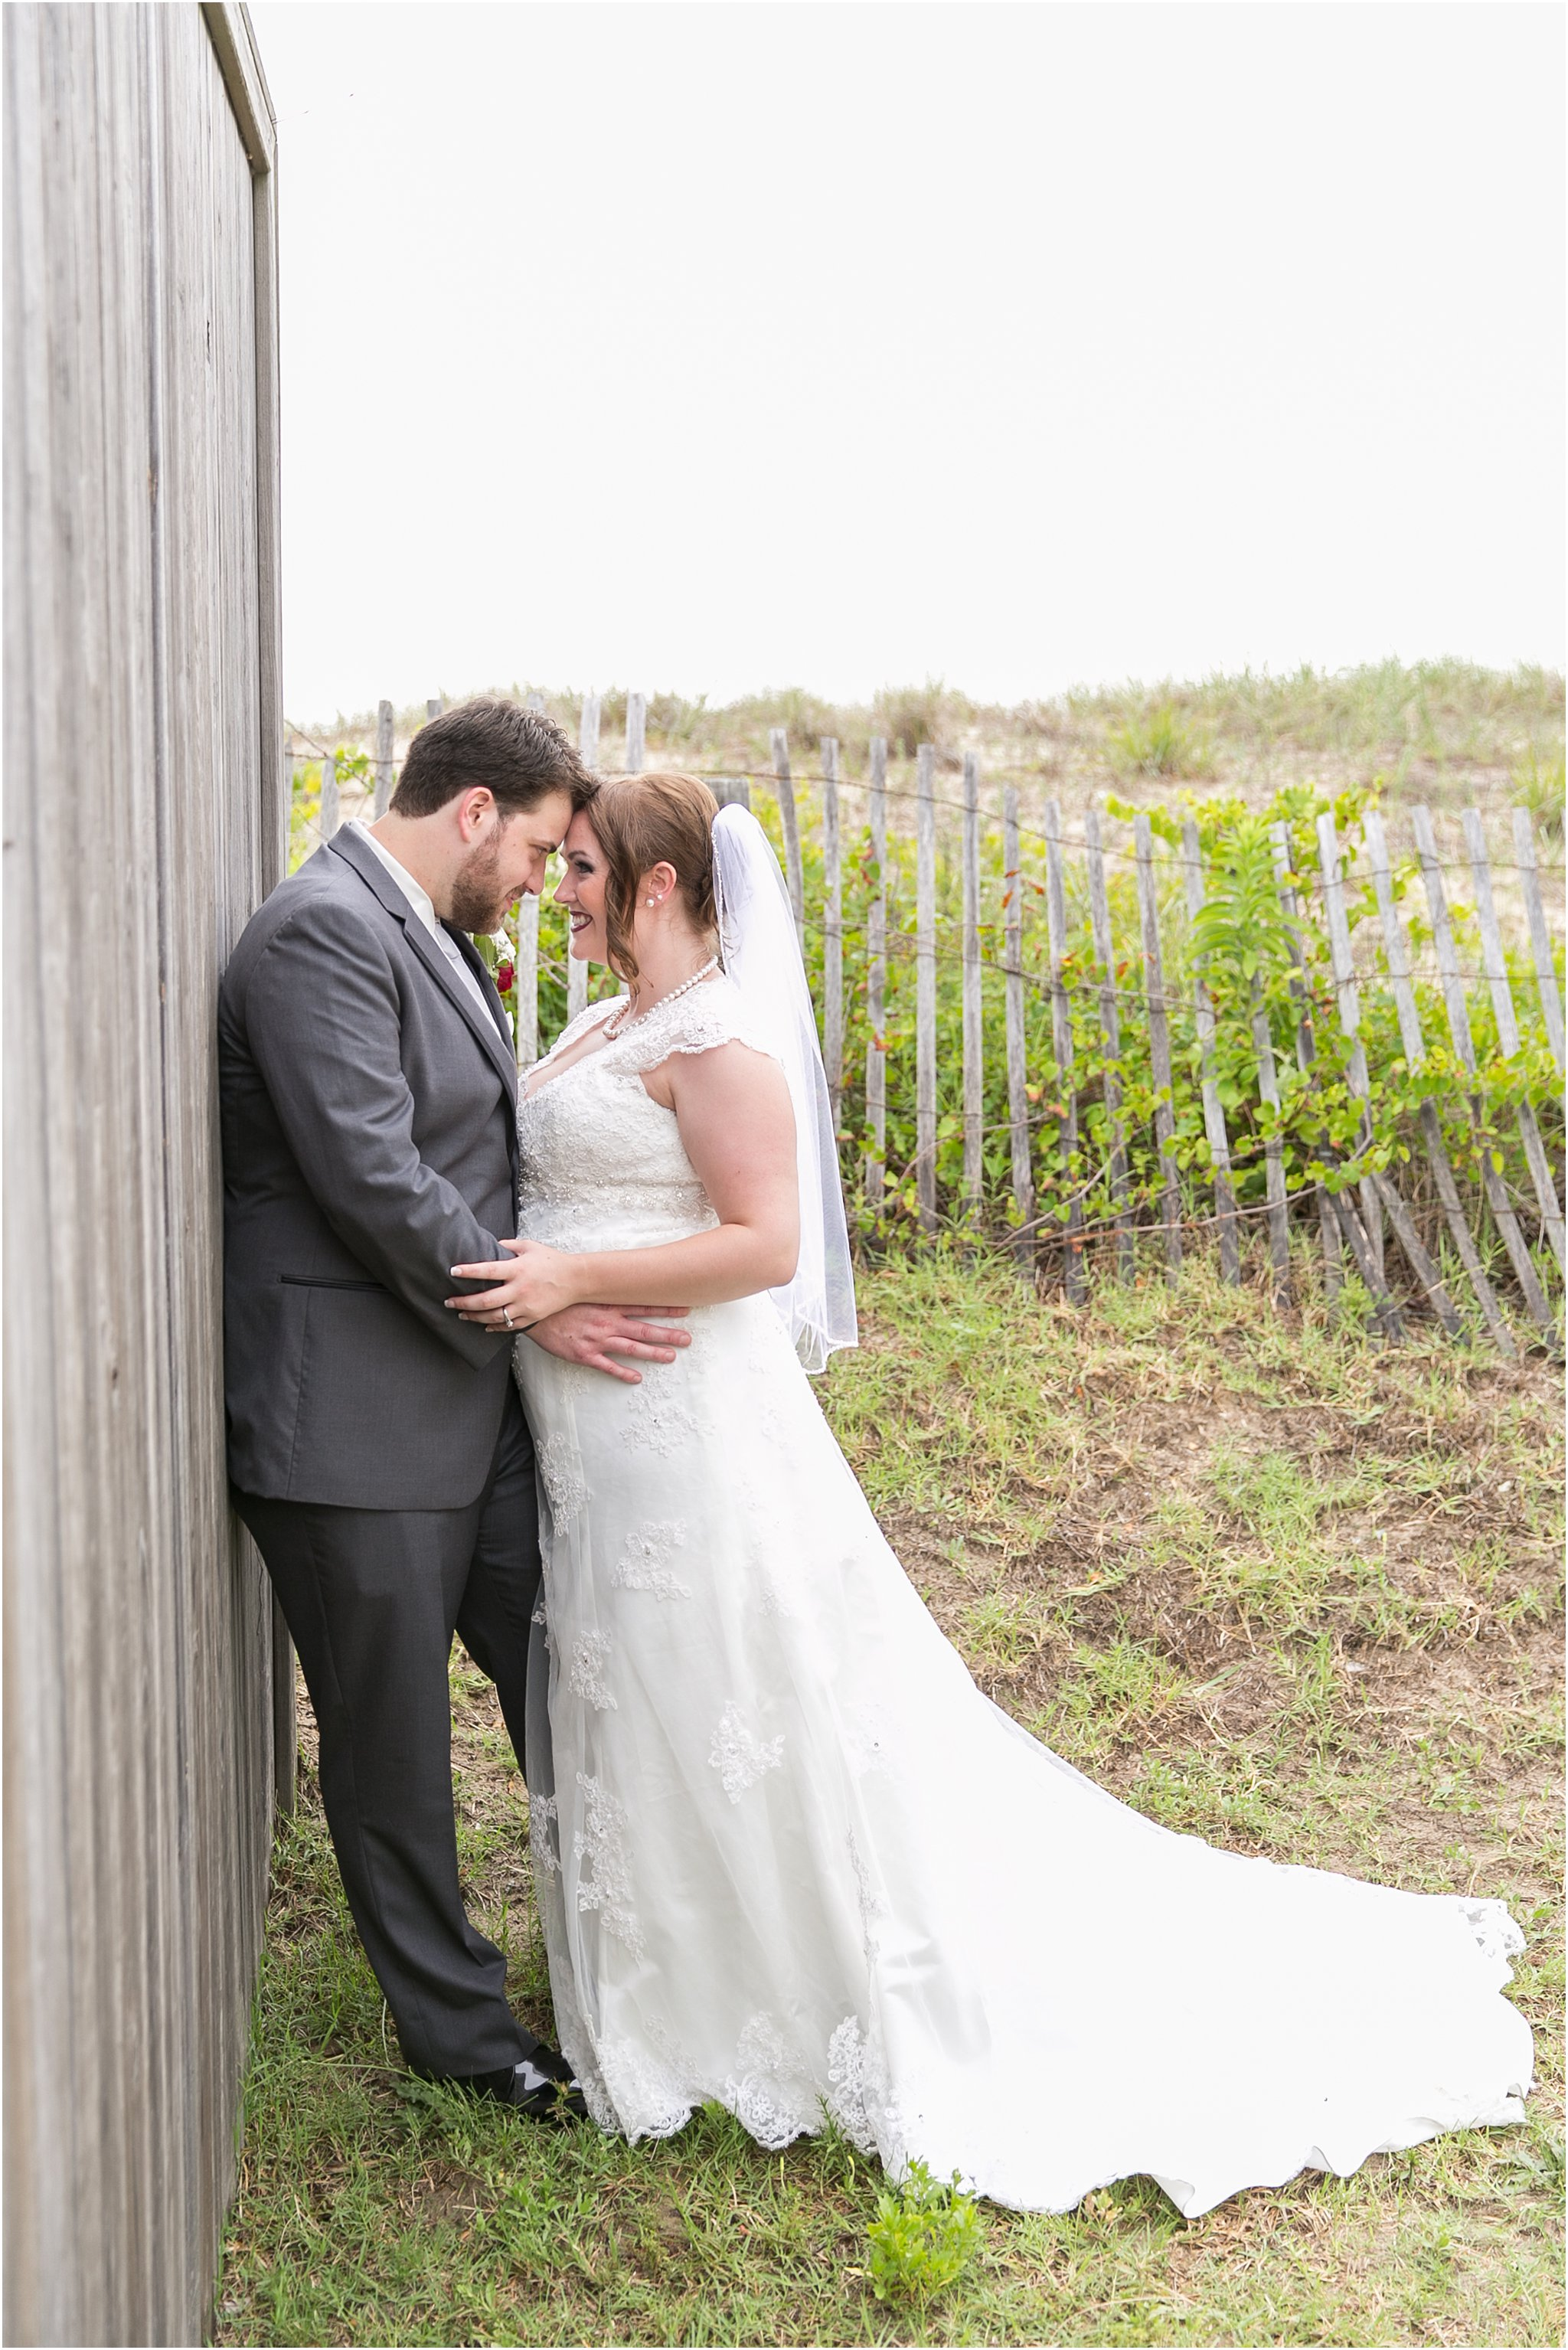 jessica_ryan_photography_virginia_beach_wedding_hampton_roads_virginia_seabreeze_damn_neck_base_wedding_0934